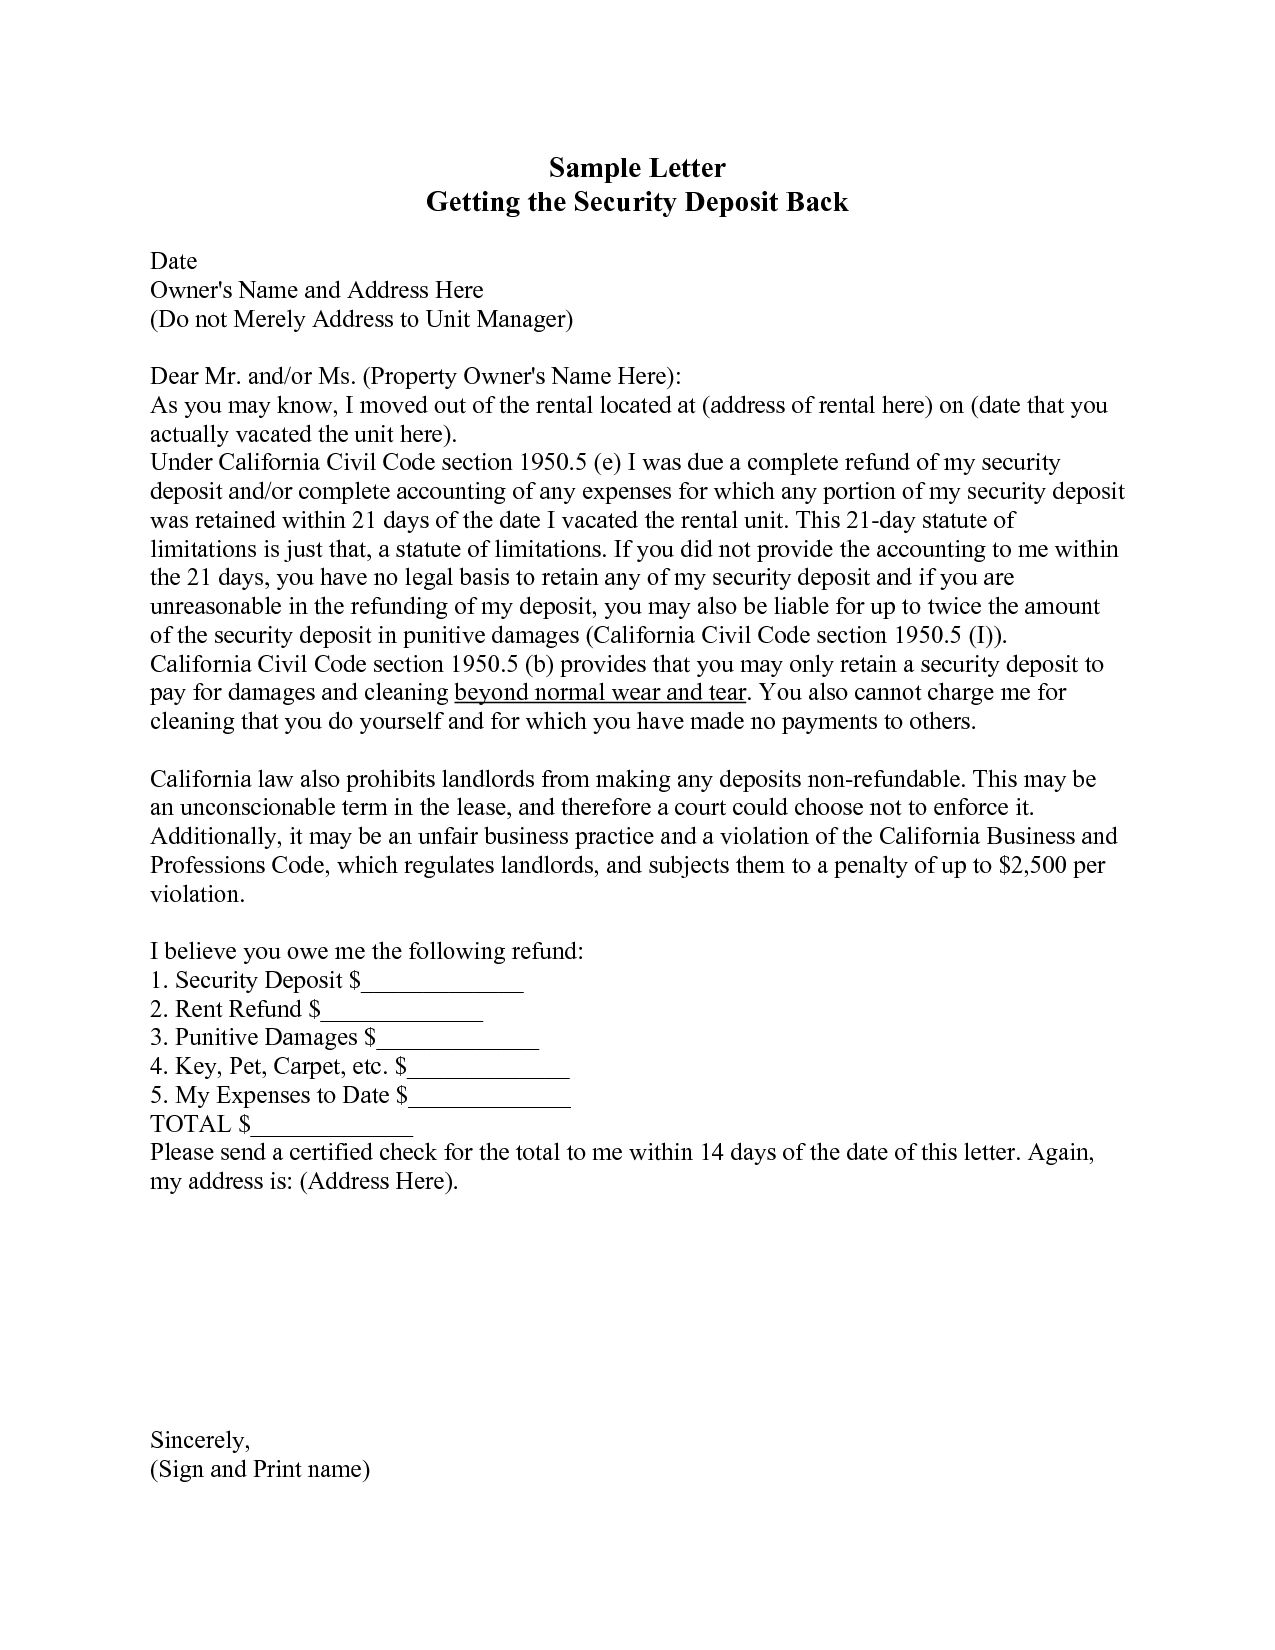 Free Security Deposit Refund Letter Template Adjustment Format